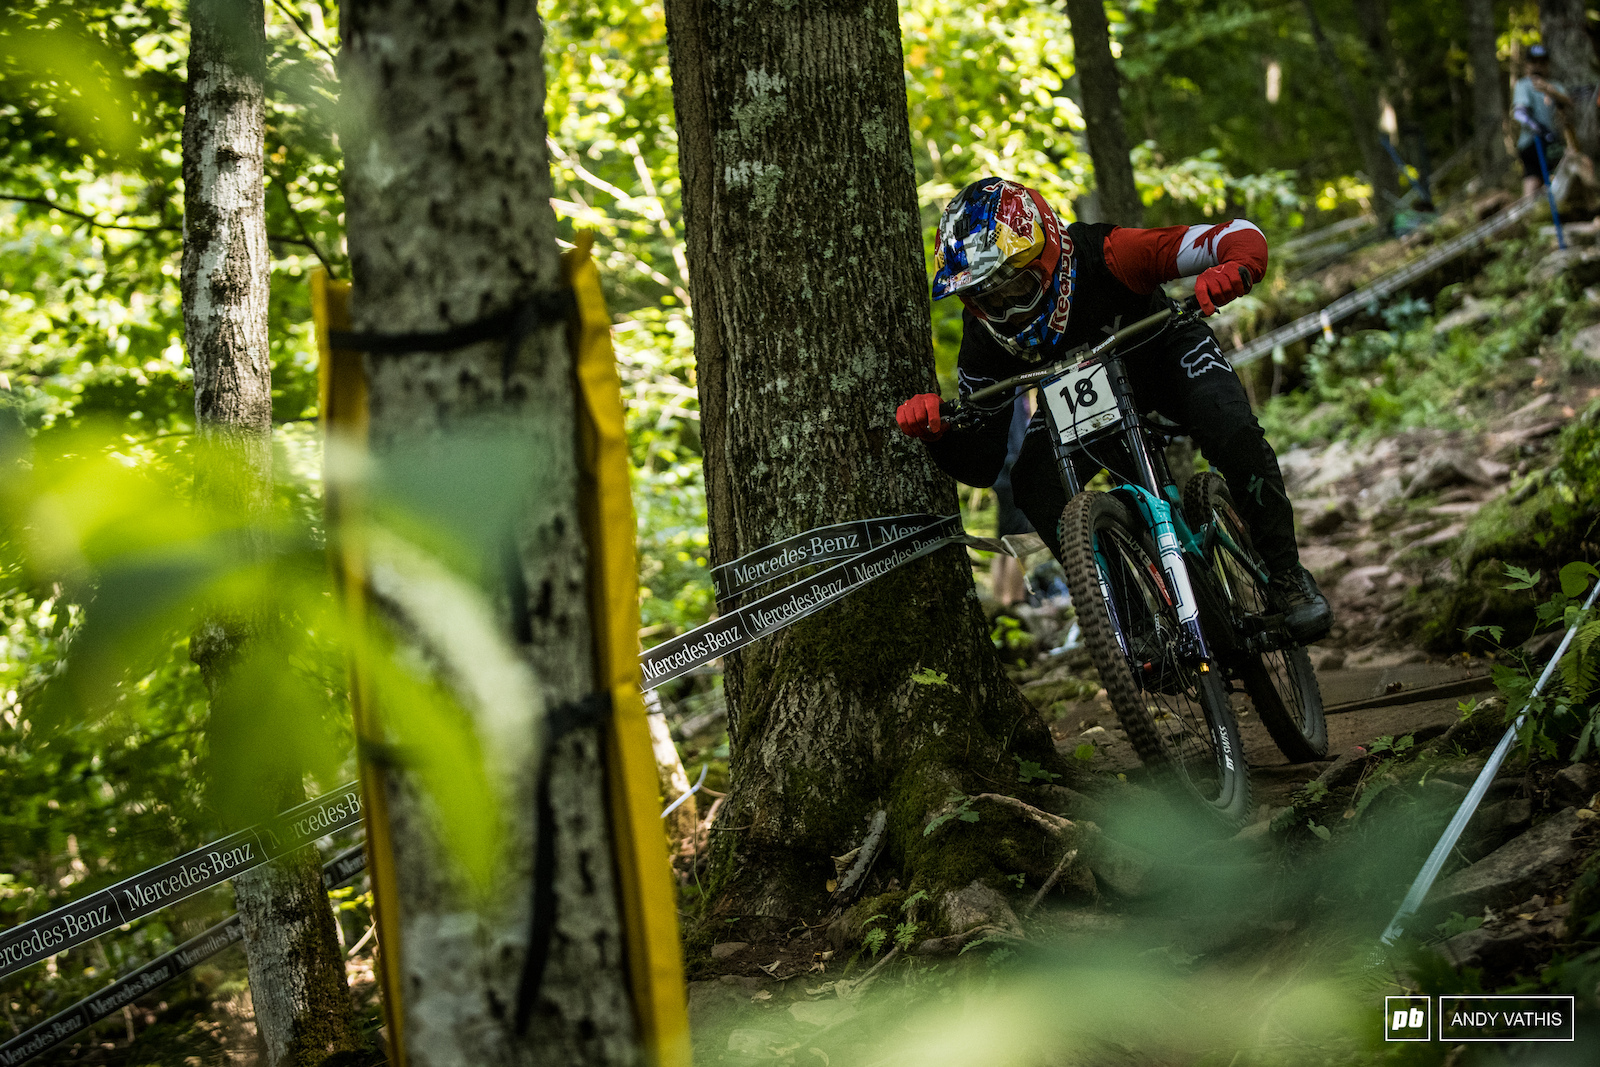 Top qualie spot for Finn Iles. It s bee a long time coming for the young man. The next step is hopefully a repeat performance tomorrow.